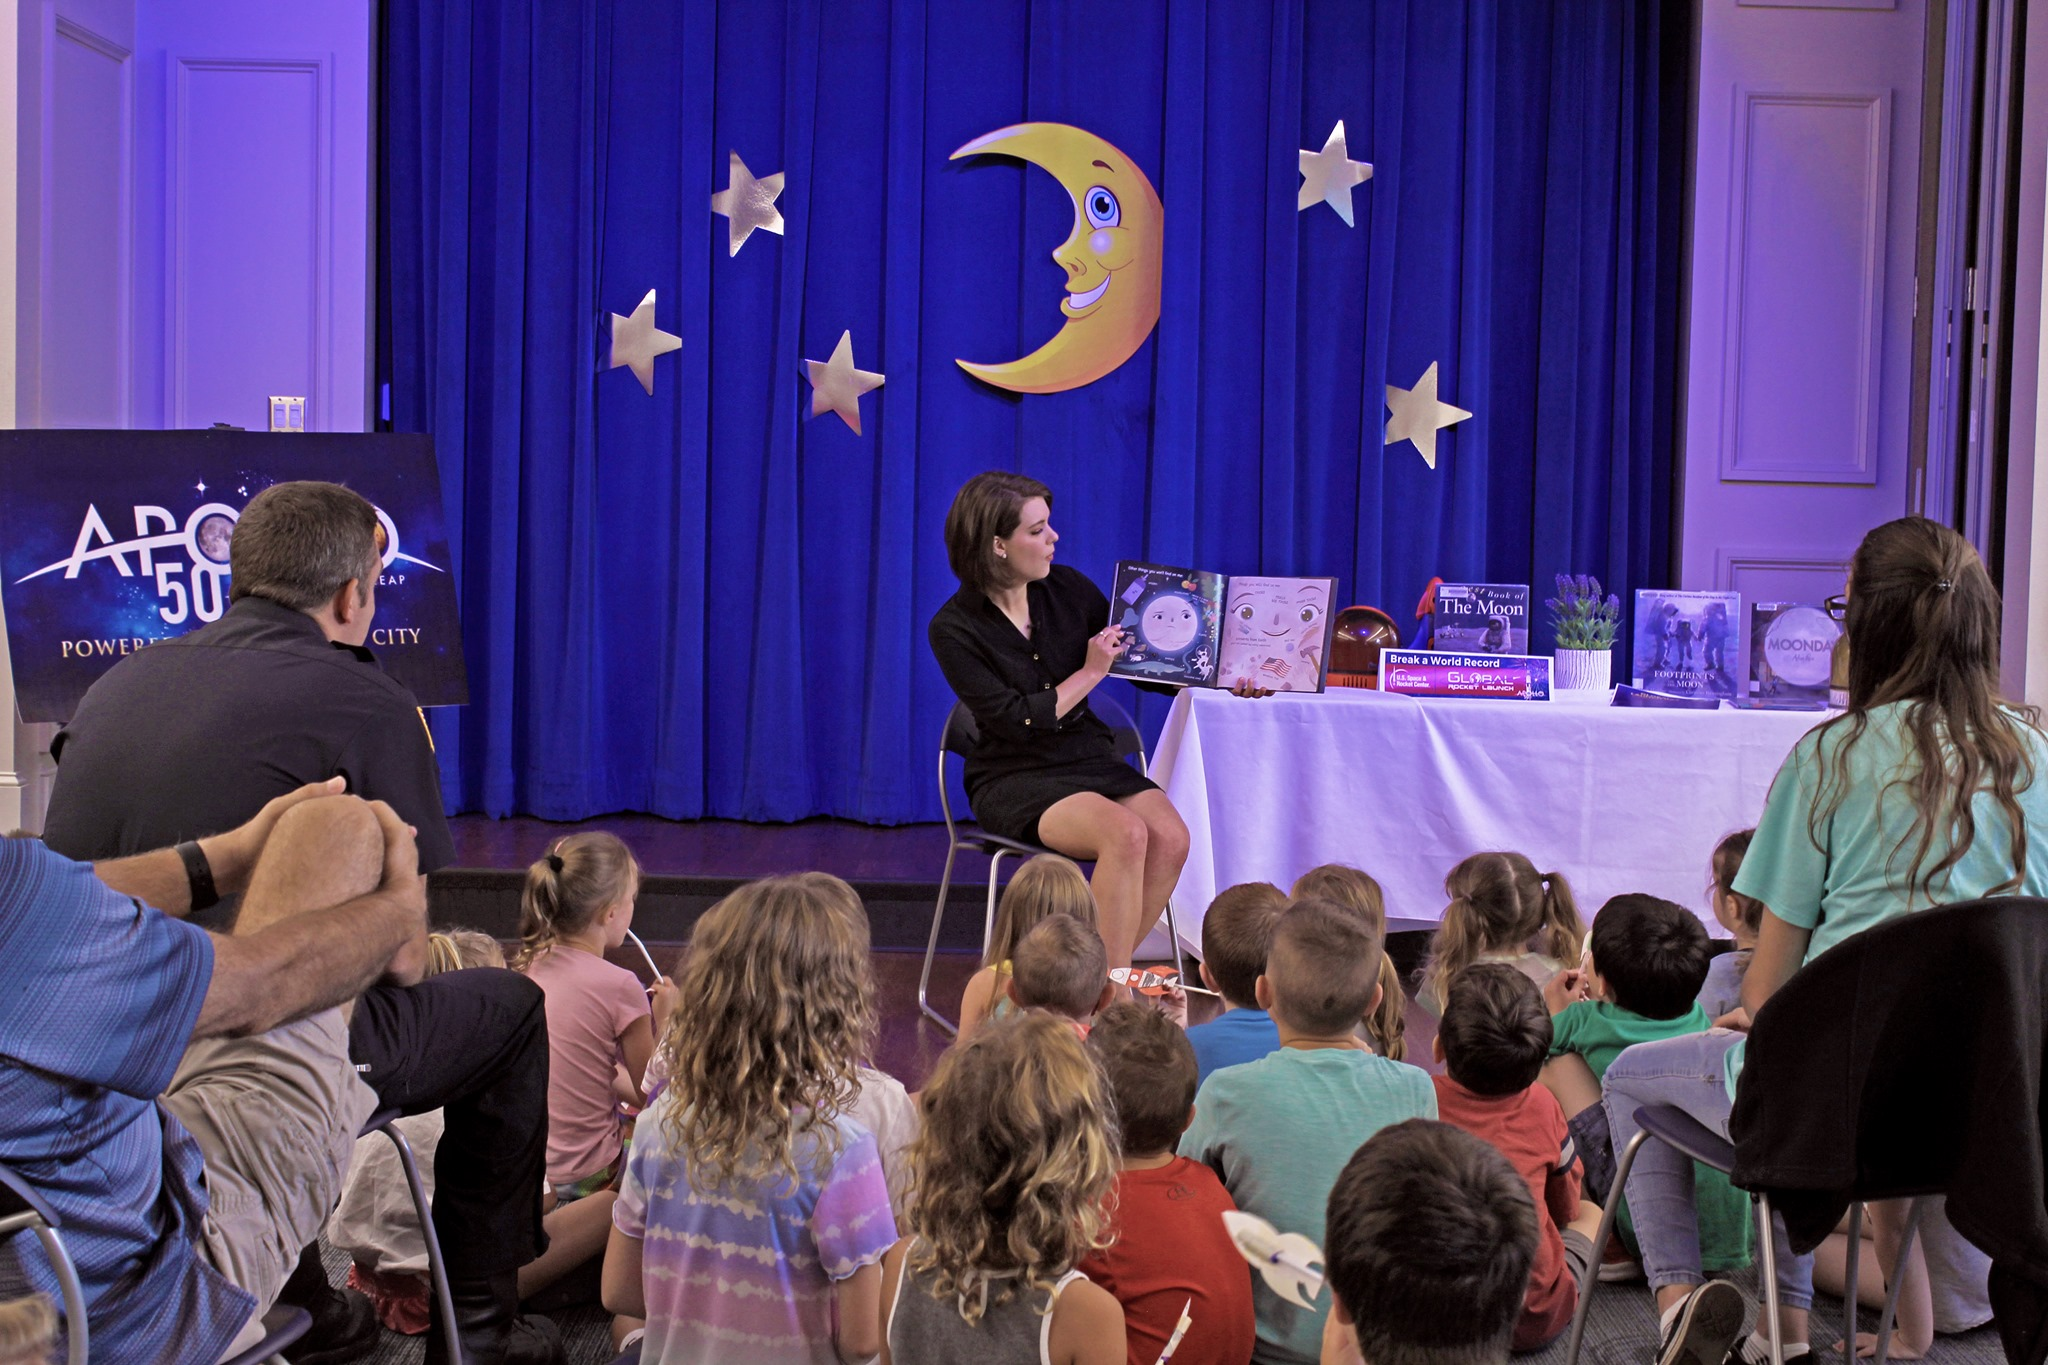 Jill Szwed from WLEX tv channel 18 read to kids during Global launch